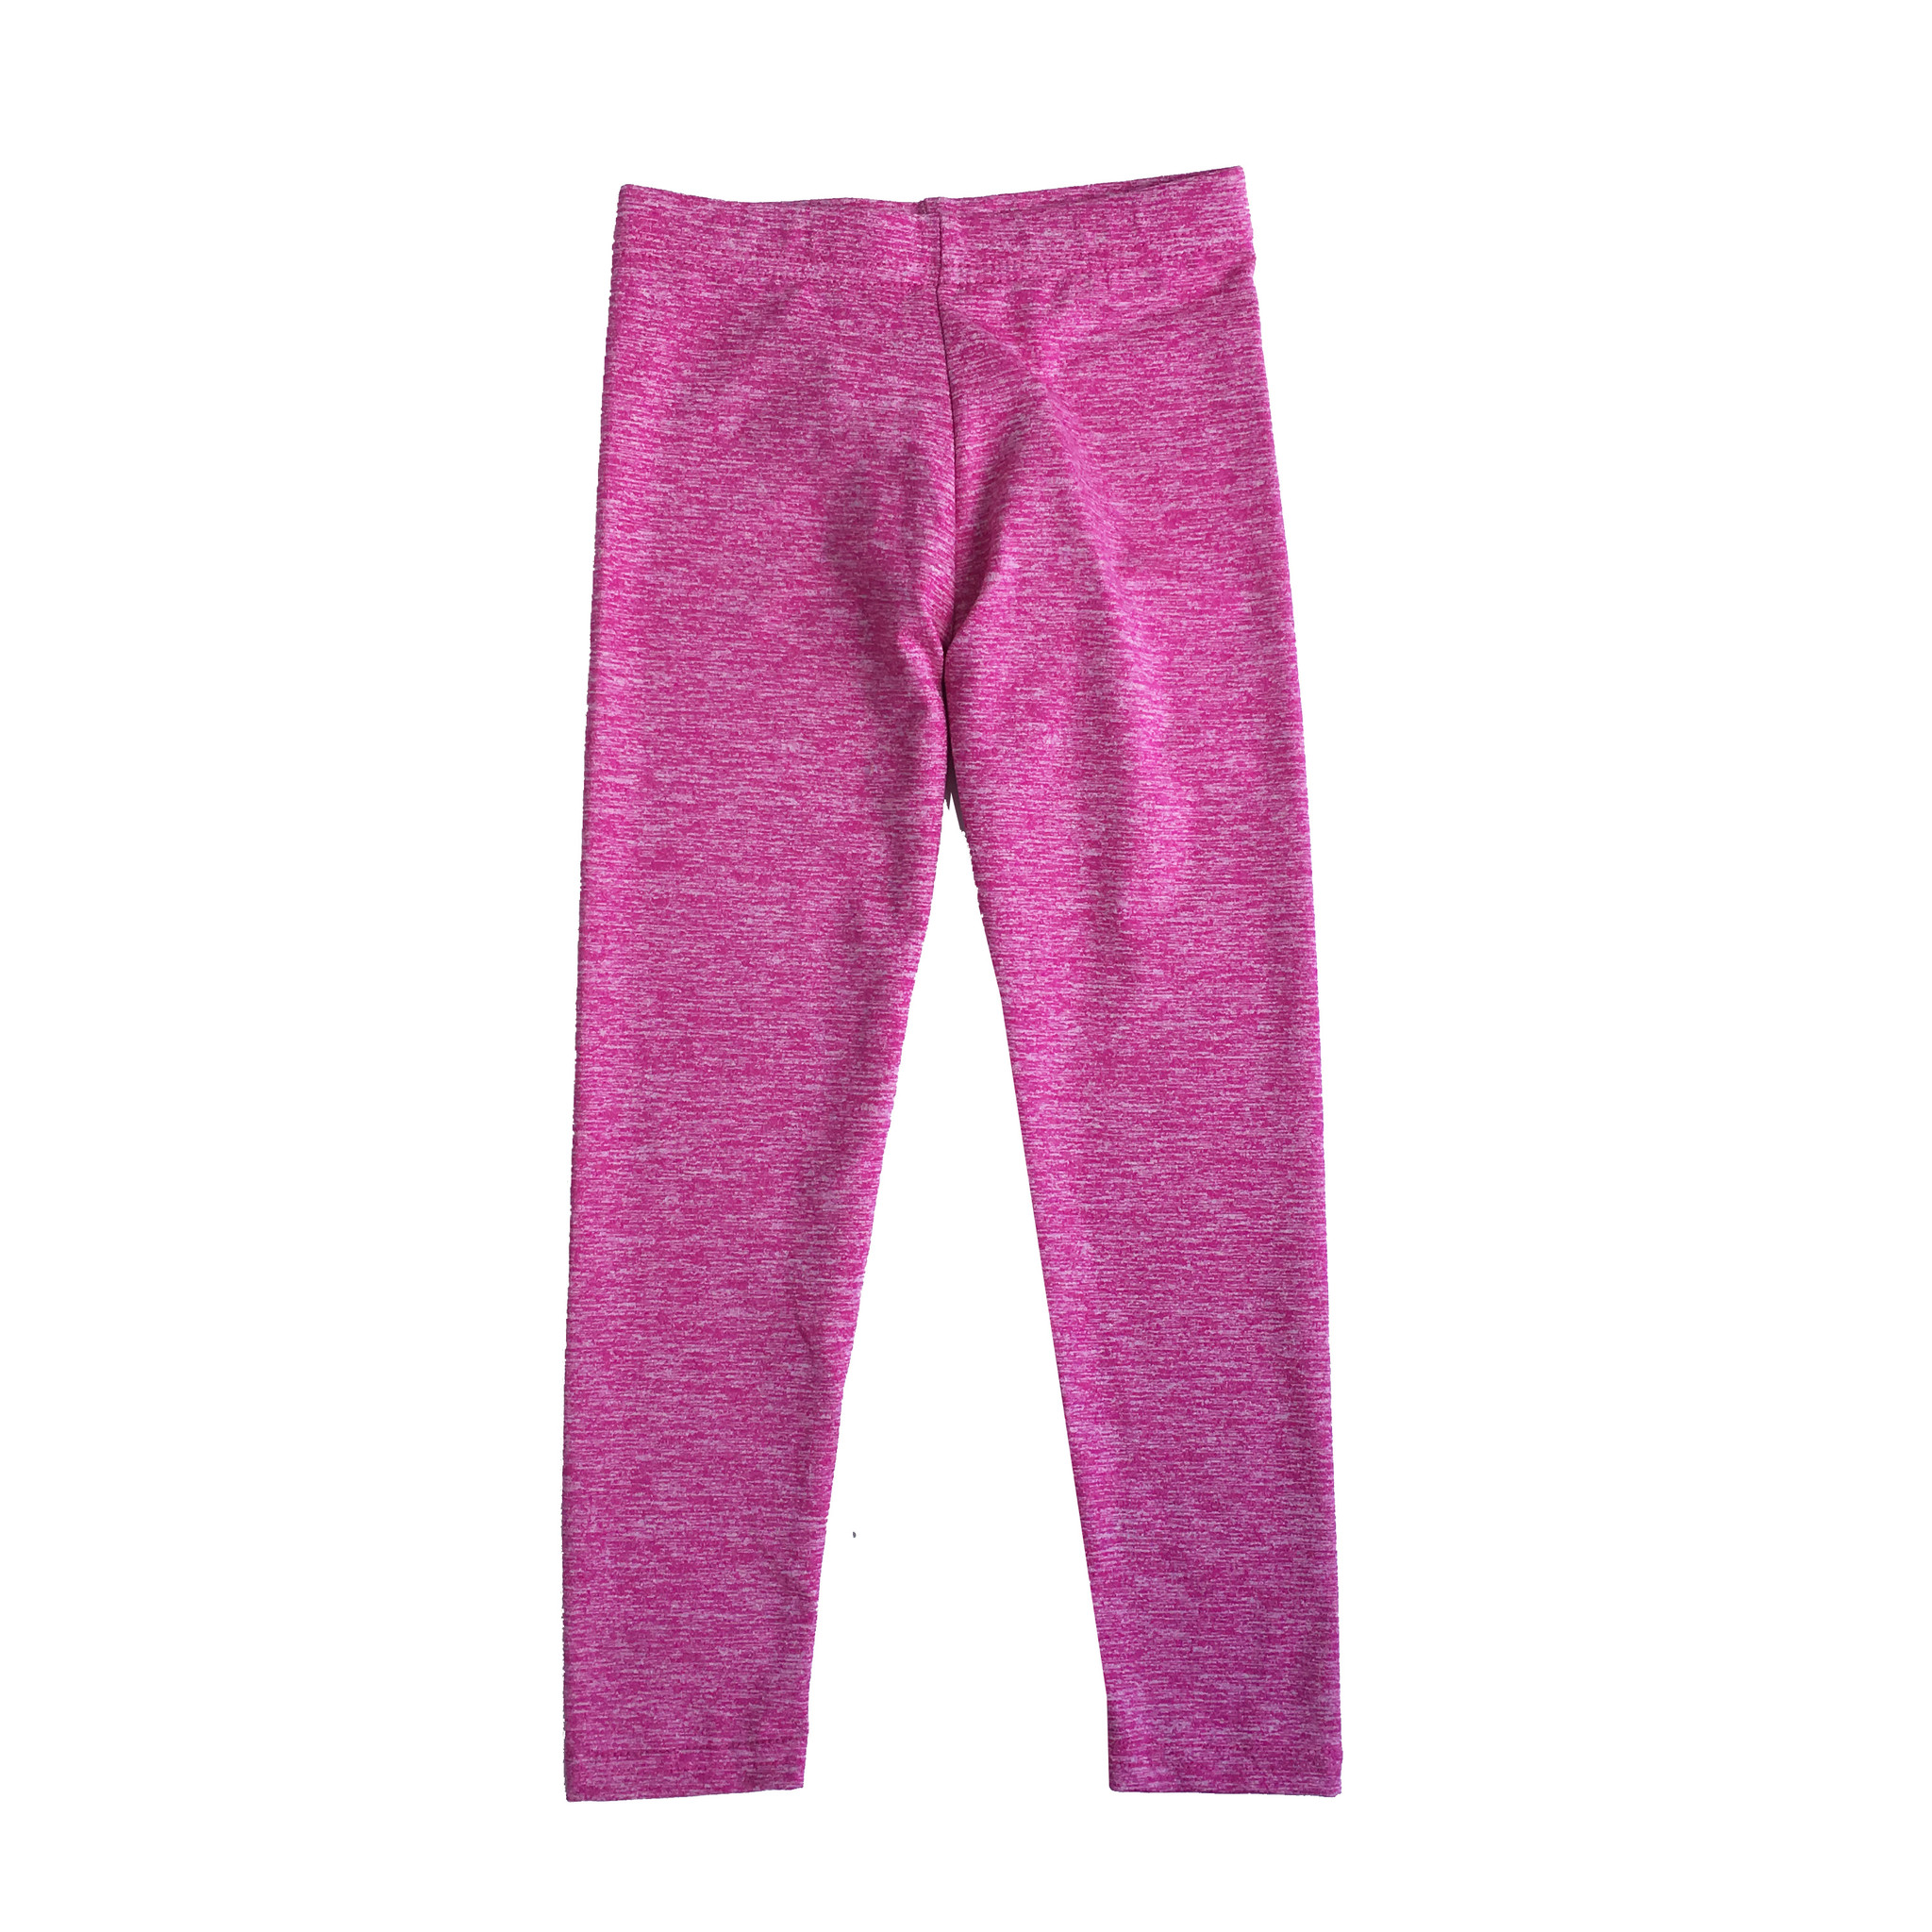 Dori Creations Pink/White Heathered Legging